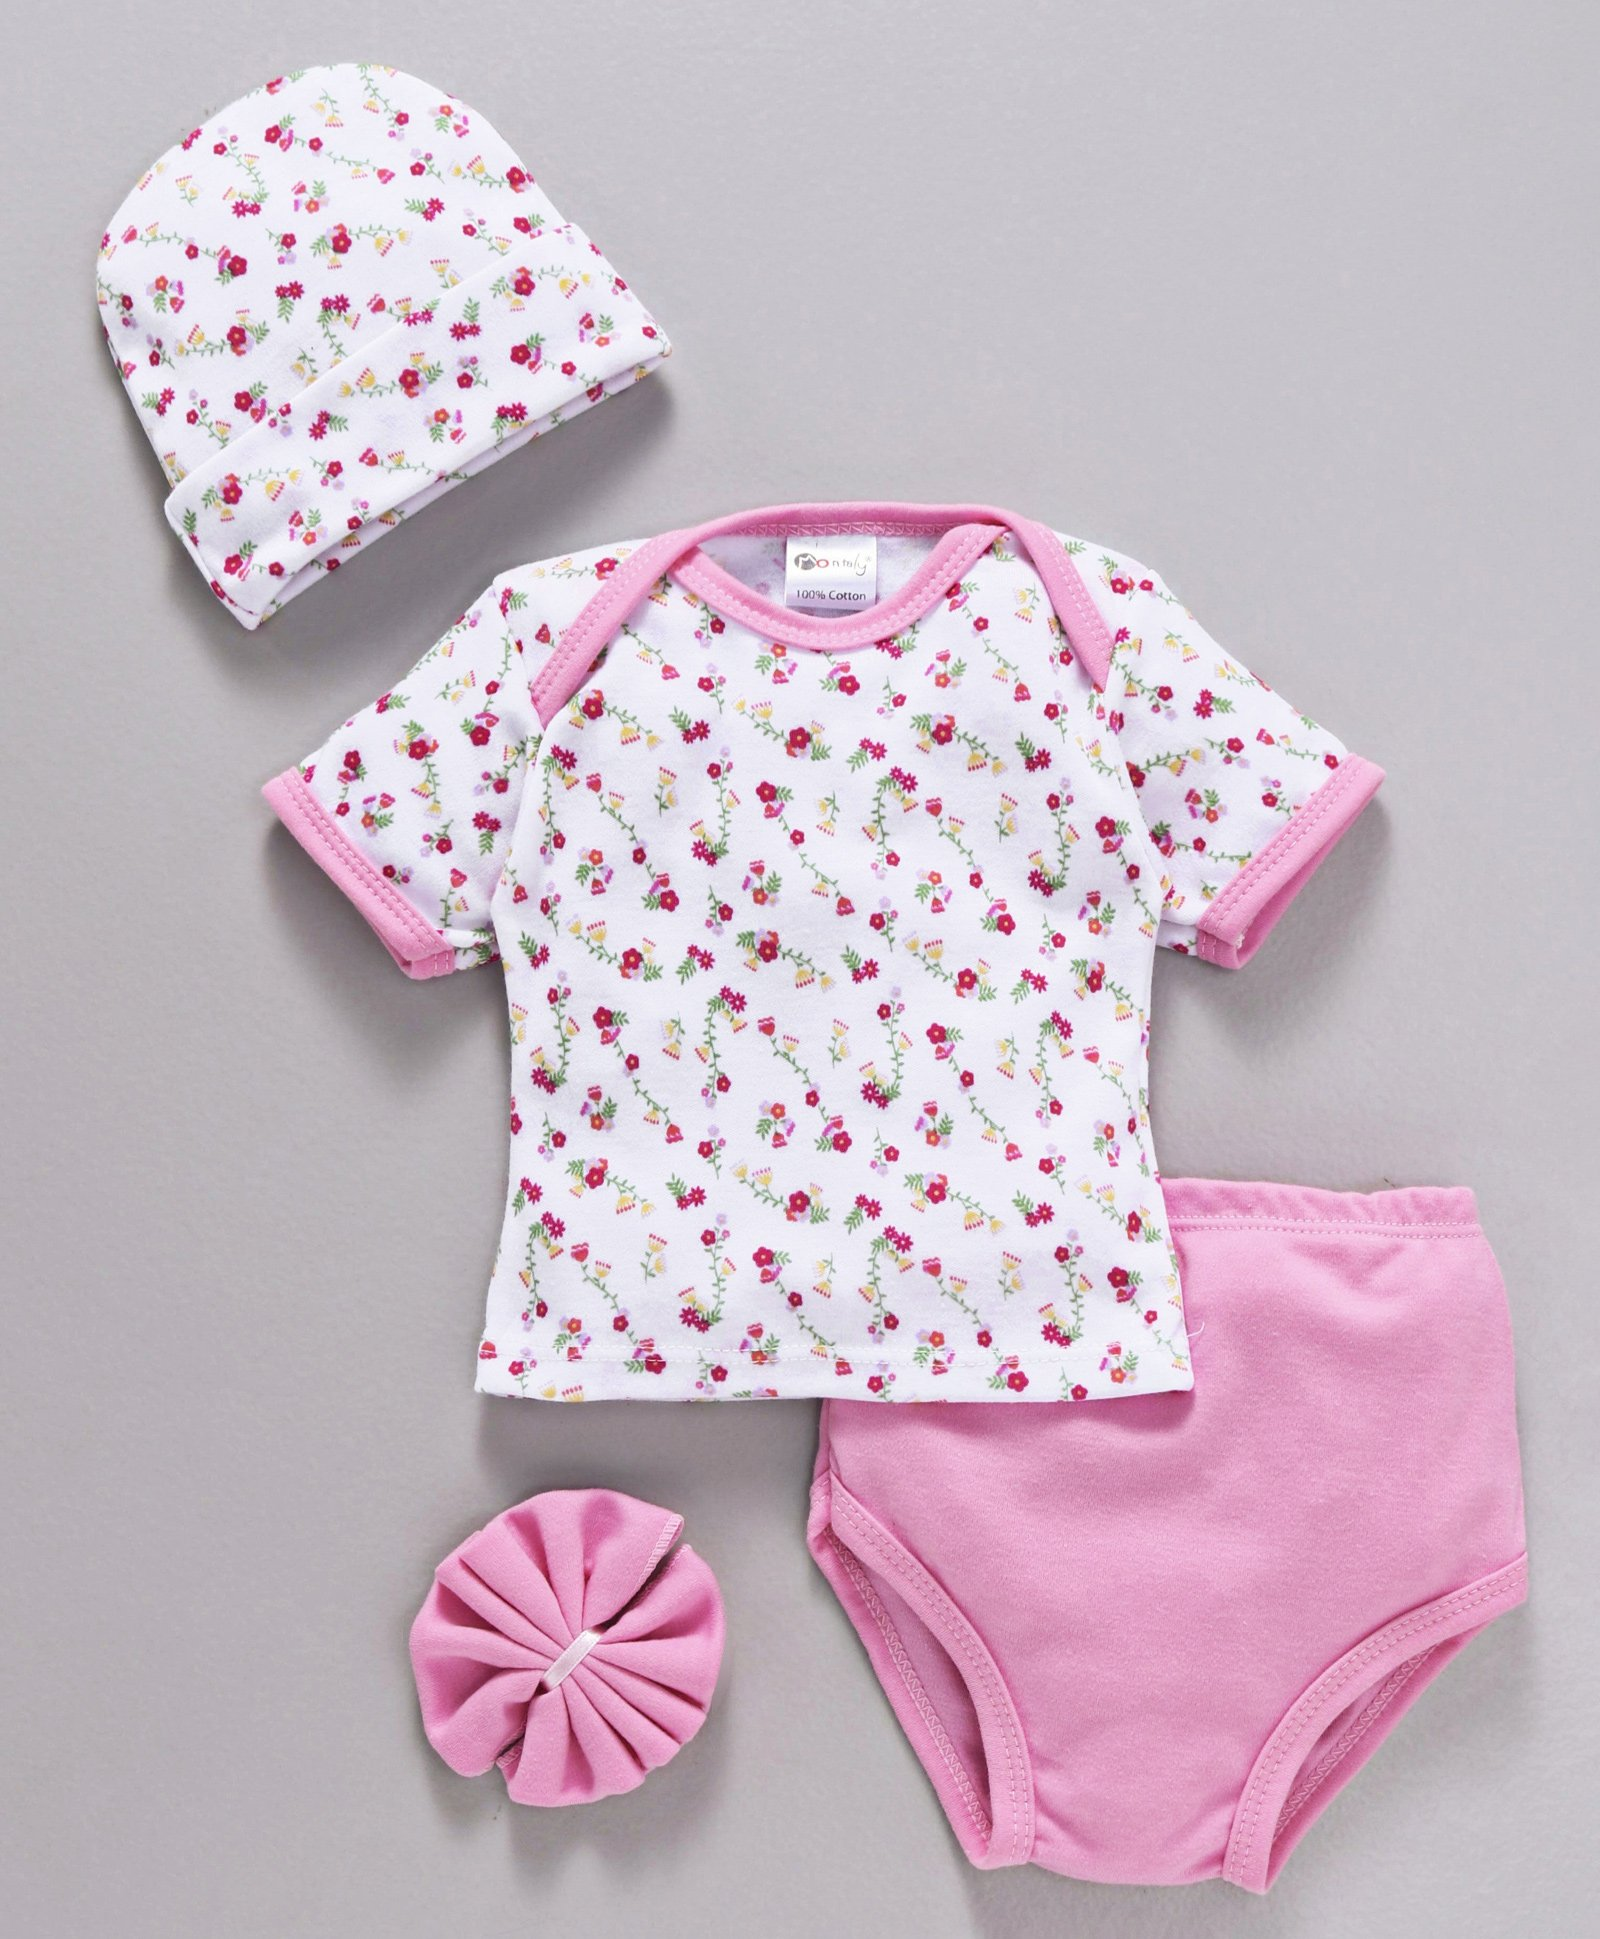 e6cc74864147a Montaly Baby Clothing Gift Set Floral Print Pink 4 Pieces for Girls (0-6 ...